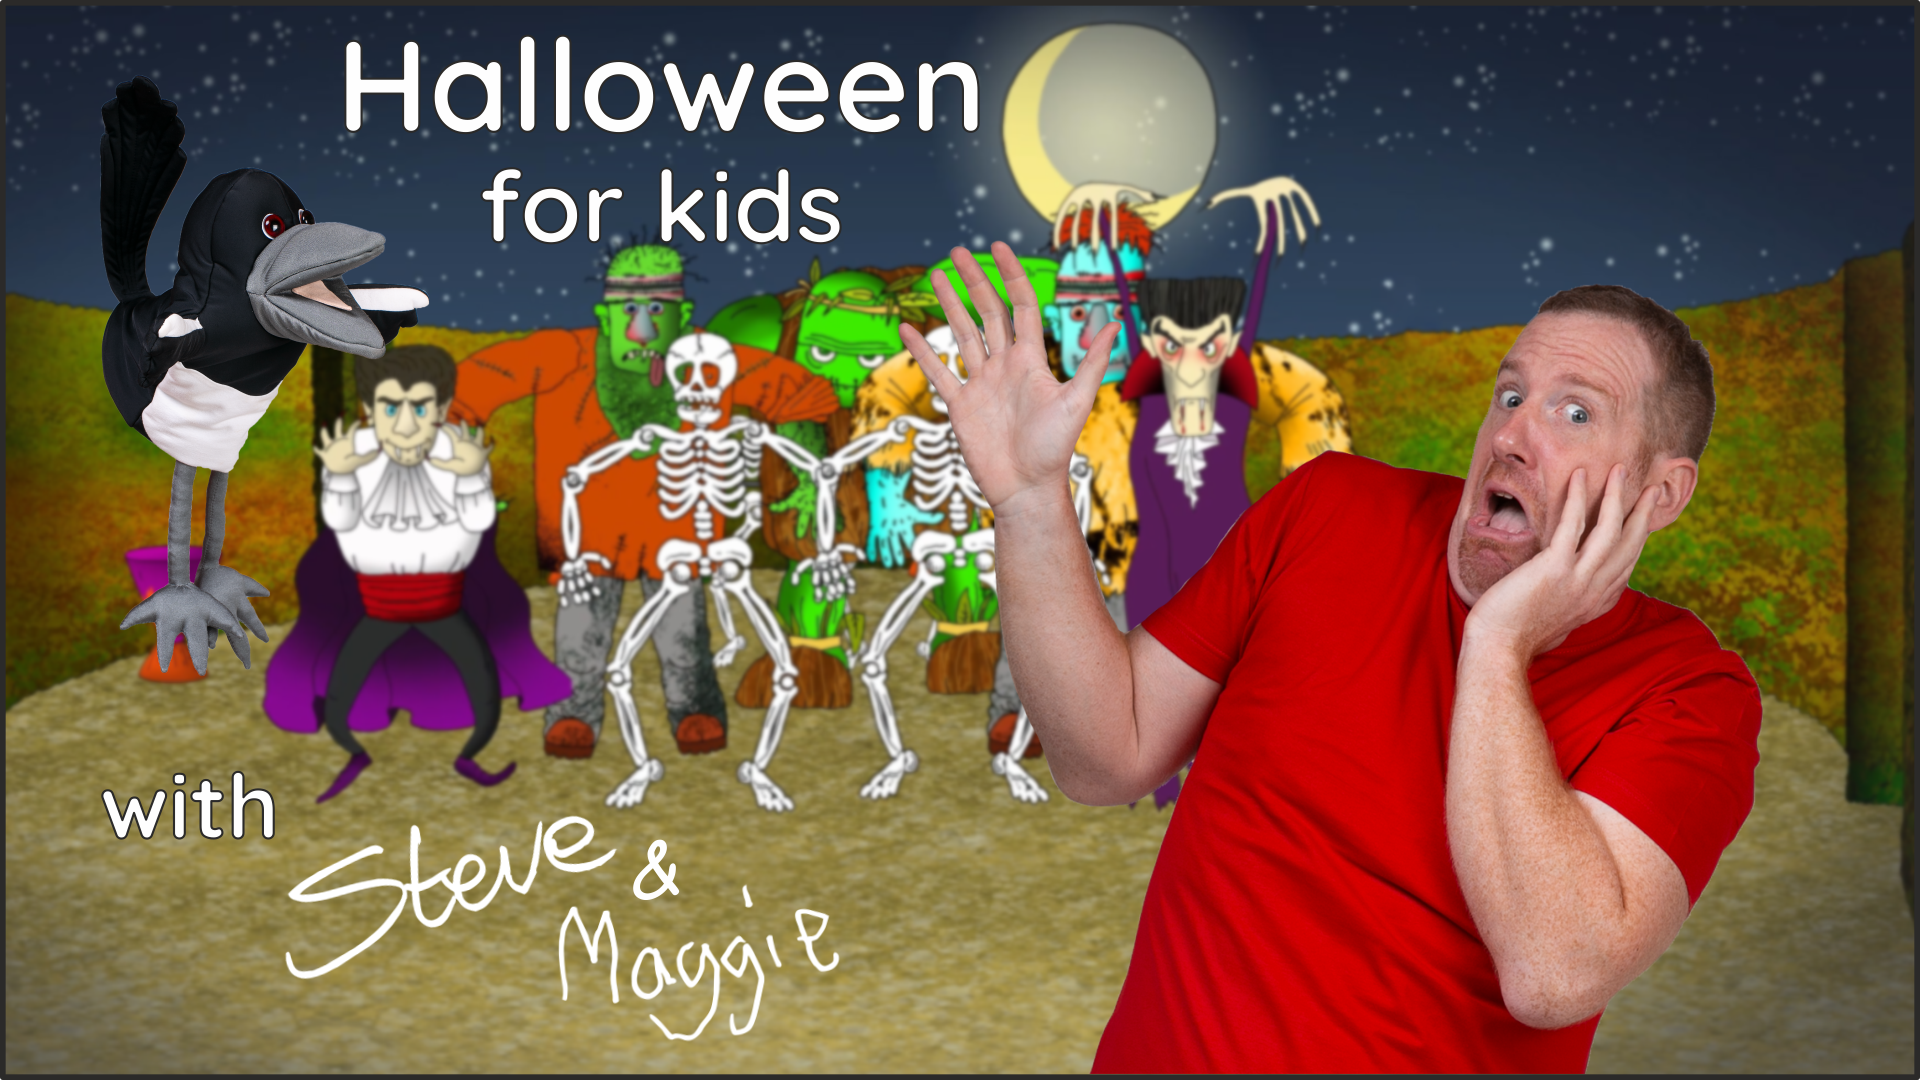 Halloween for Kids with Steve & Maggie